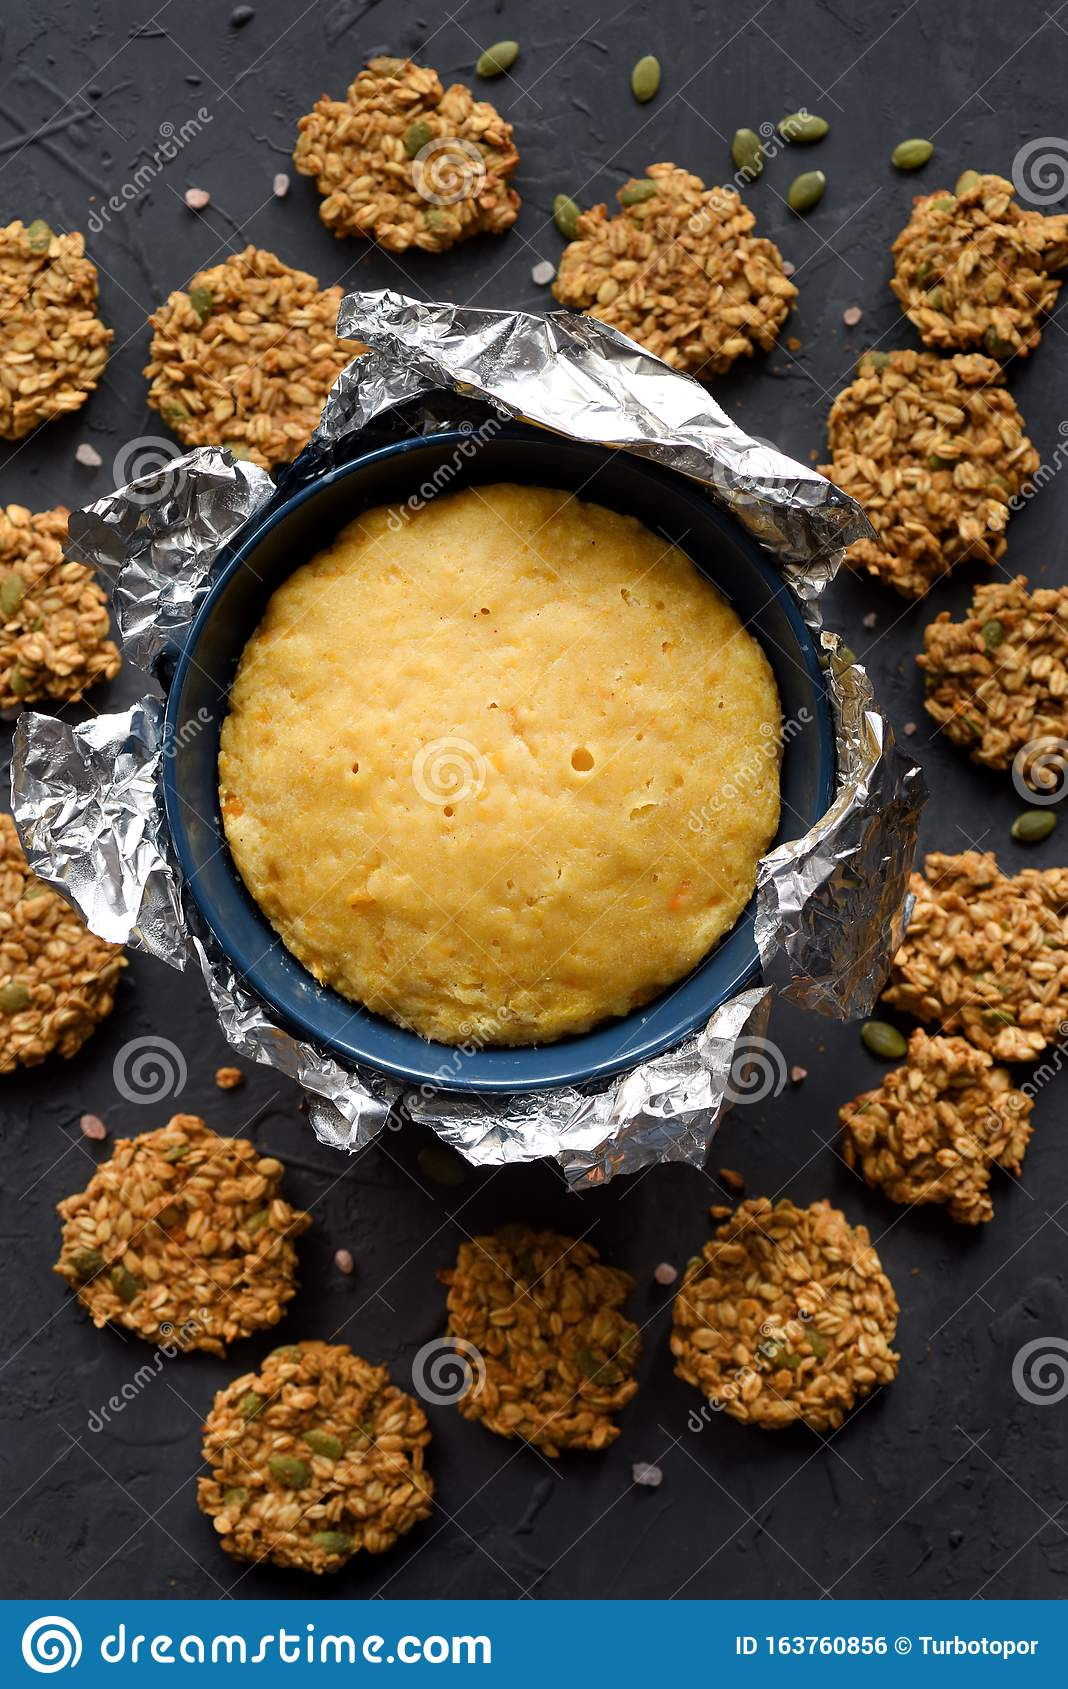 Healthy Homemade Pumpking Dishes Pumpkin Steam Pudding In Baking Foil And Pumpking Oatmeal Vegan Cookies On Black Background Stock Photo Image Of Creamy Culture 163760856